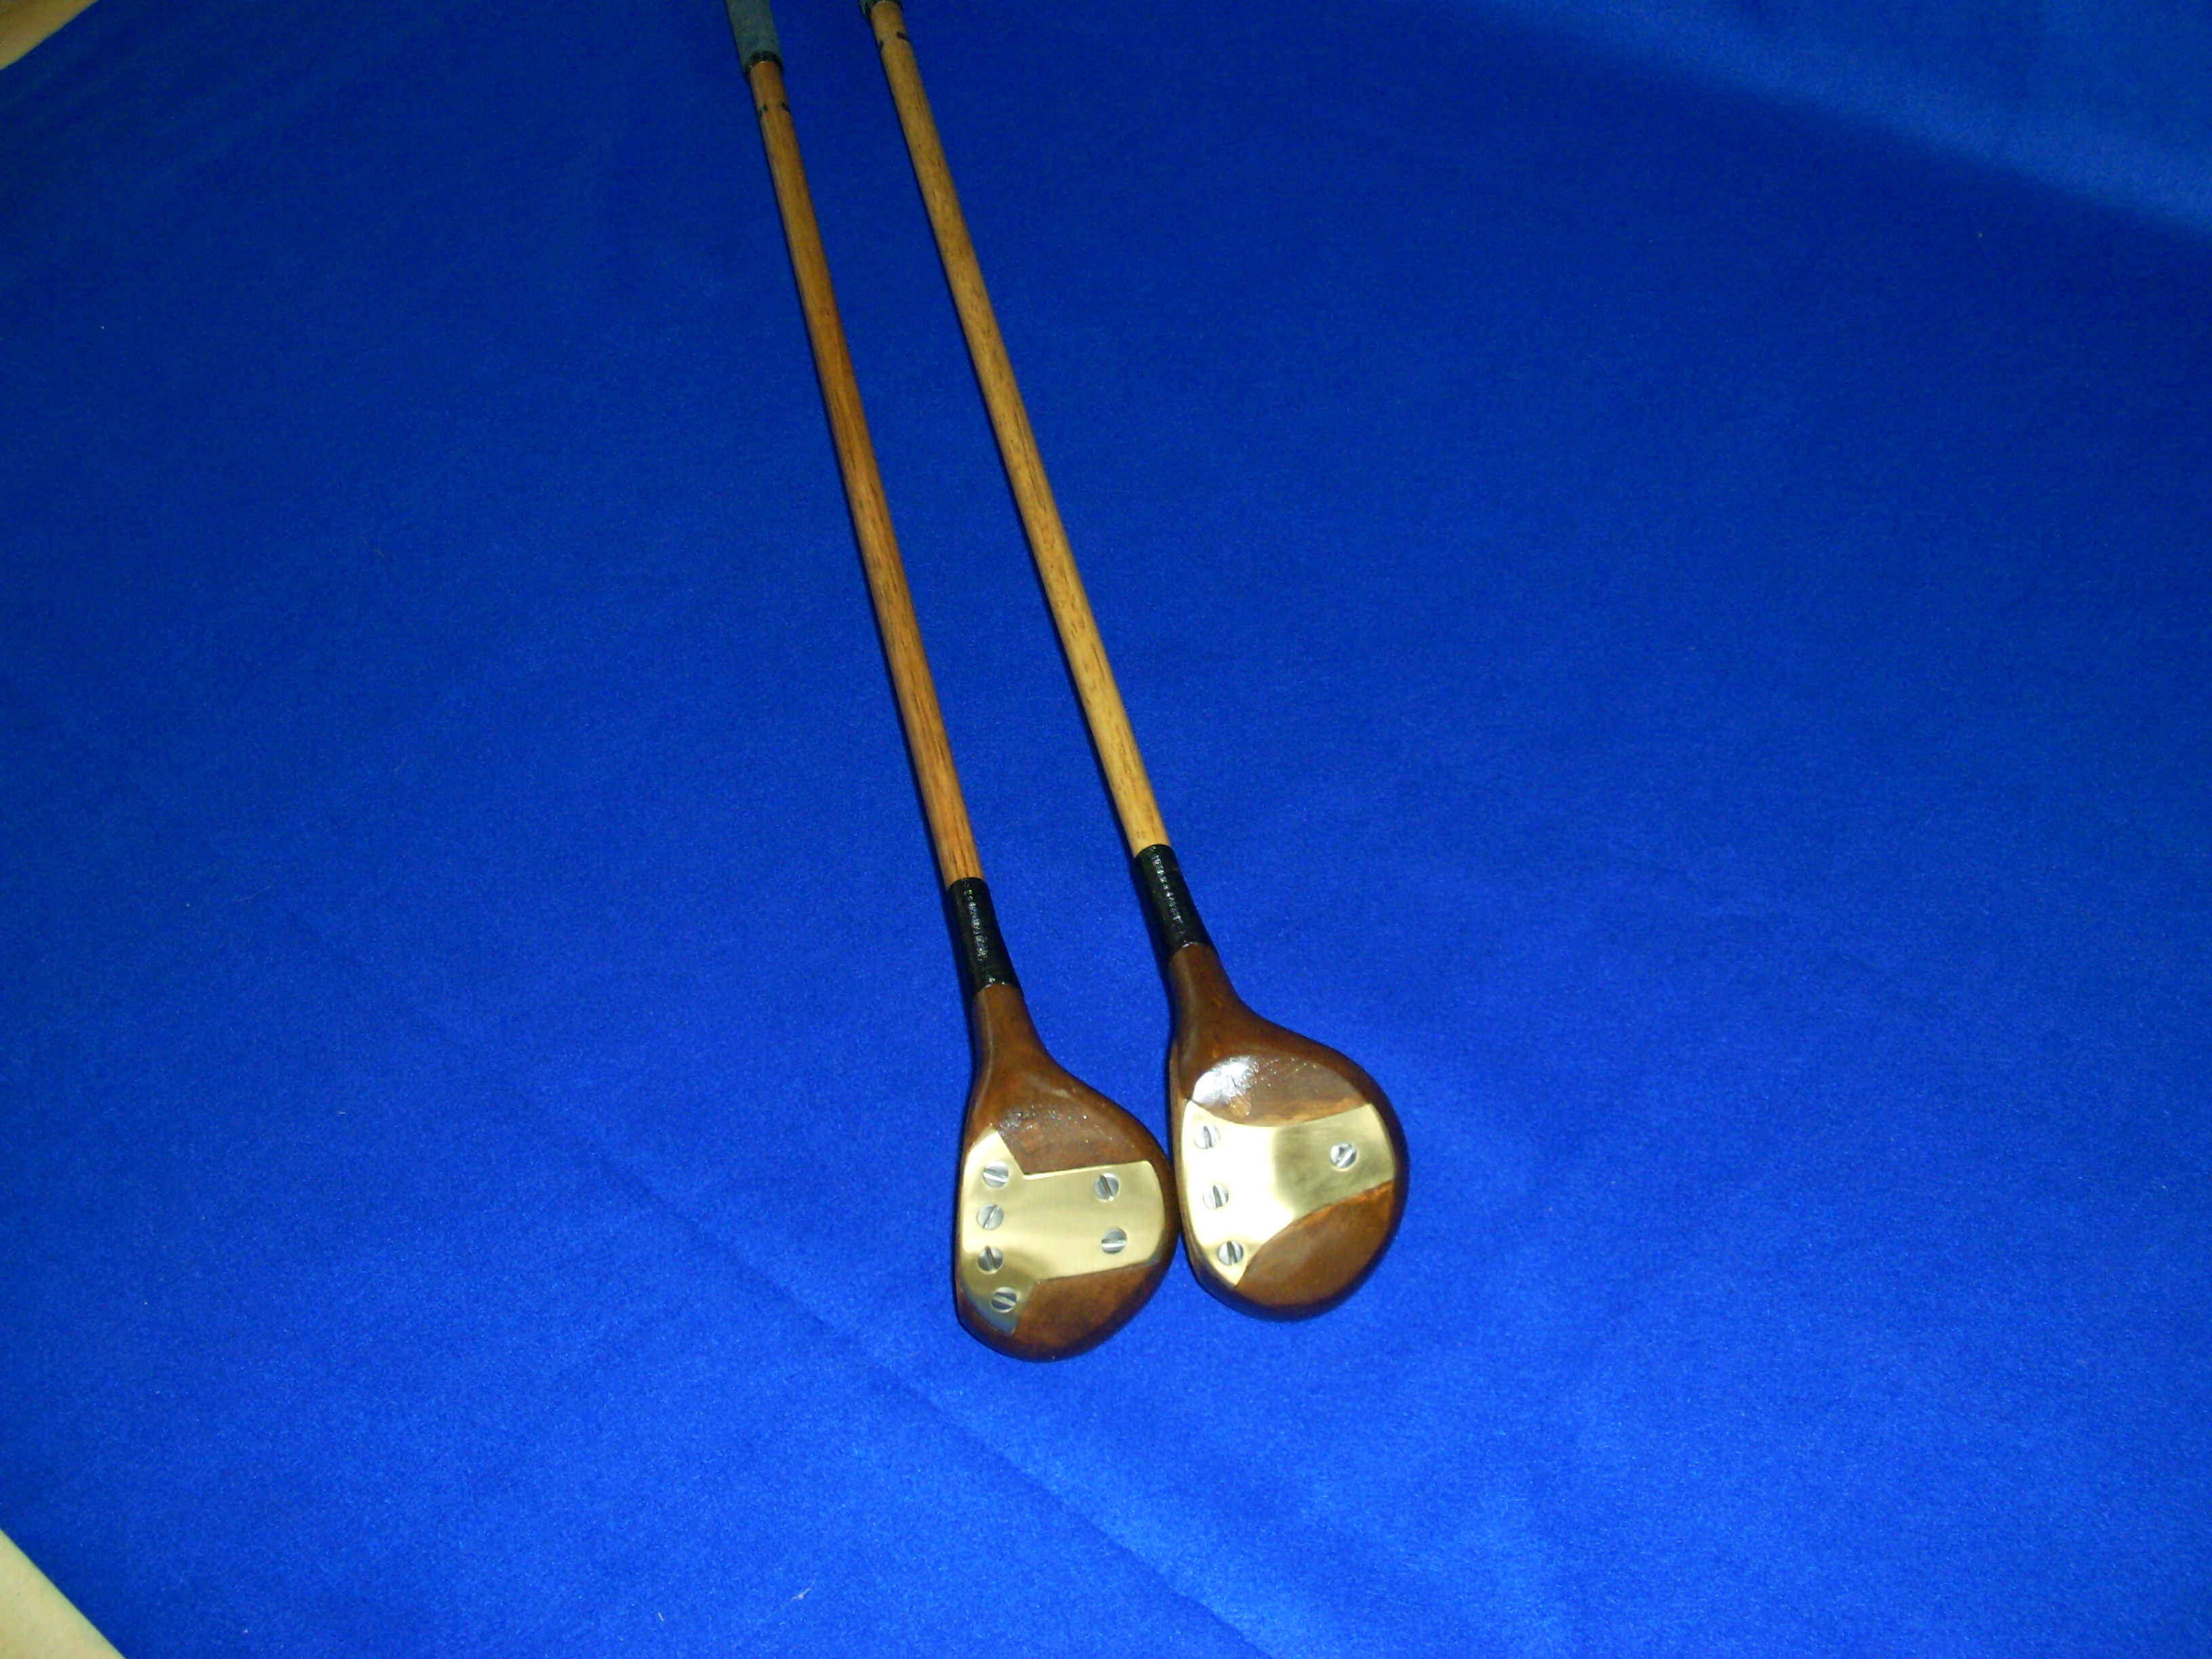 A PAIR OF WOODS 1 DRIVER,1 BRASSIE